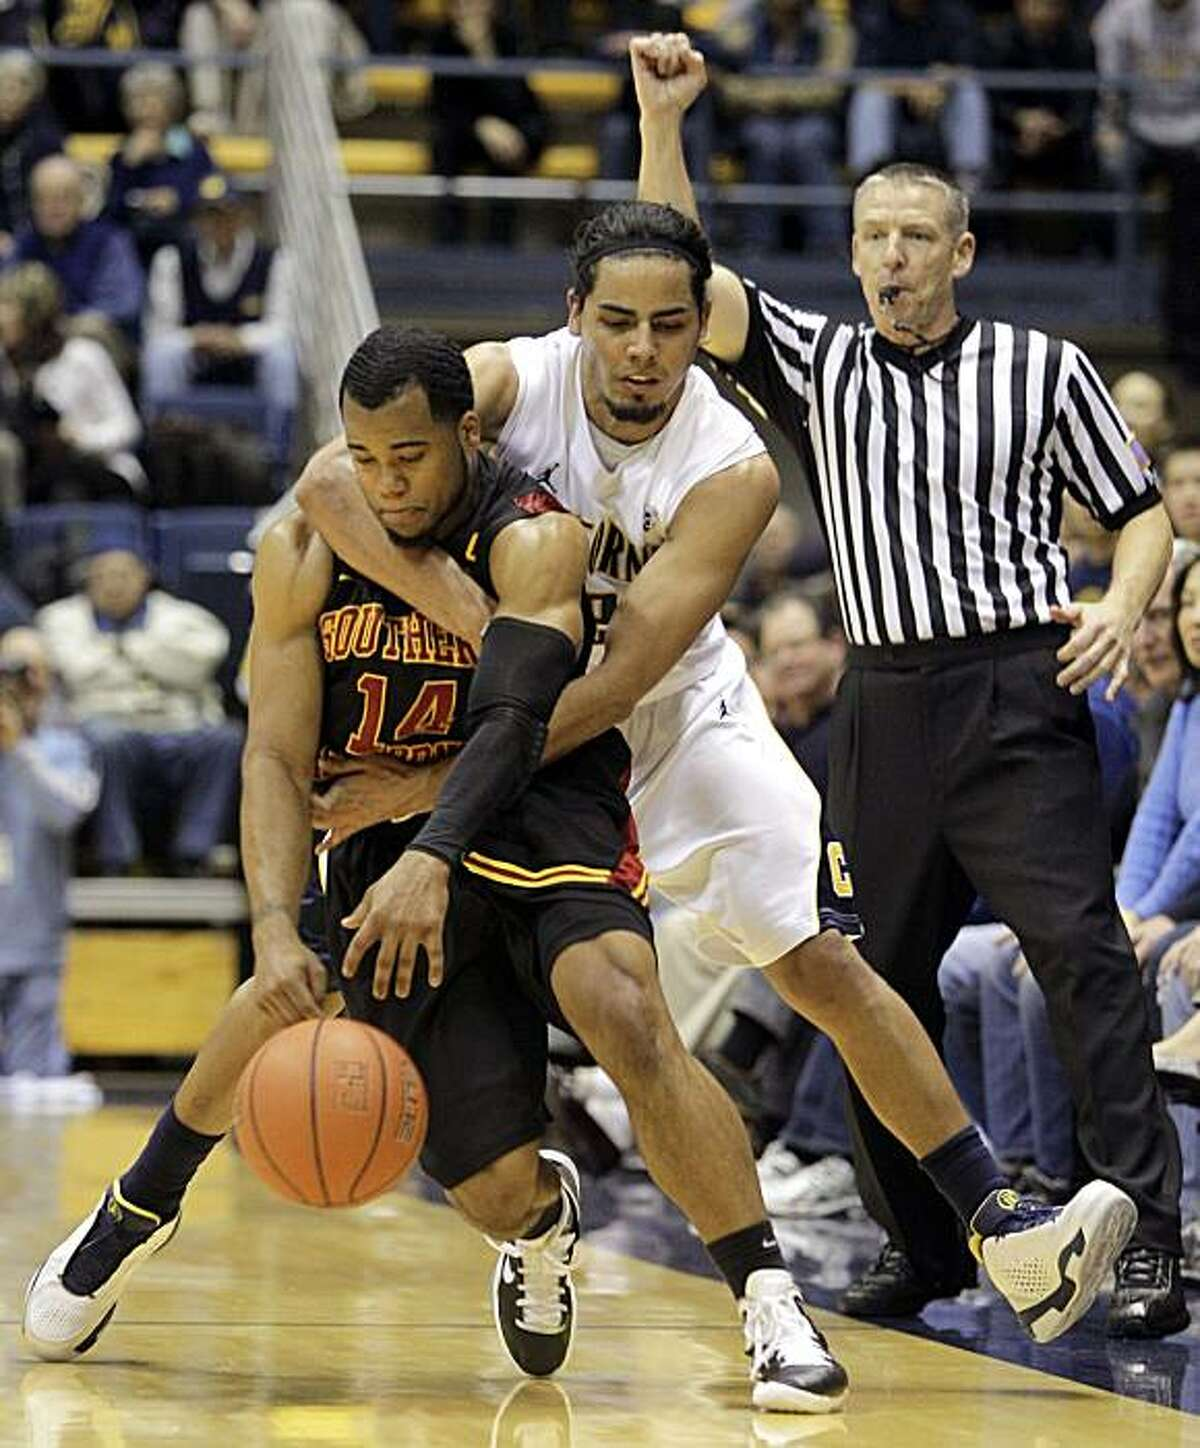 California's Jorge Gutierrez fouls Southern California's Donte Smith during the final seconds of an NCAA college basketball game Thursday, Feb. 17, 2011, in Berkeley, Calif.